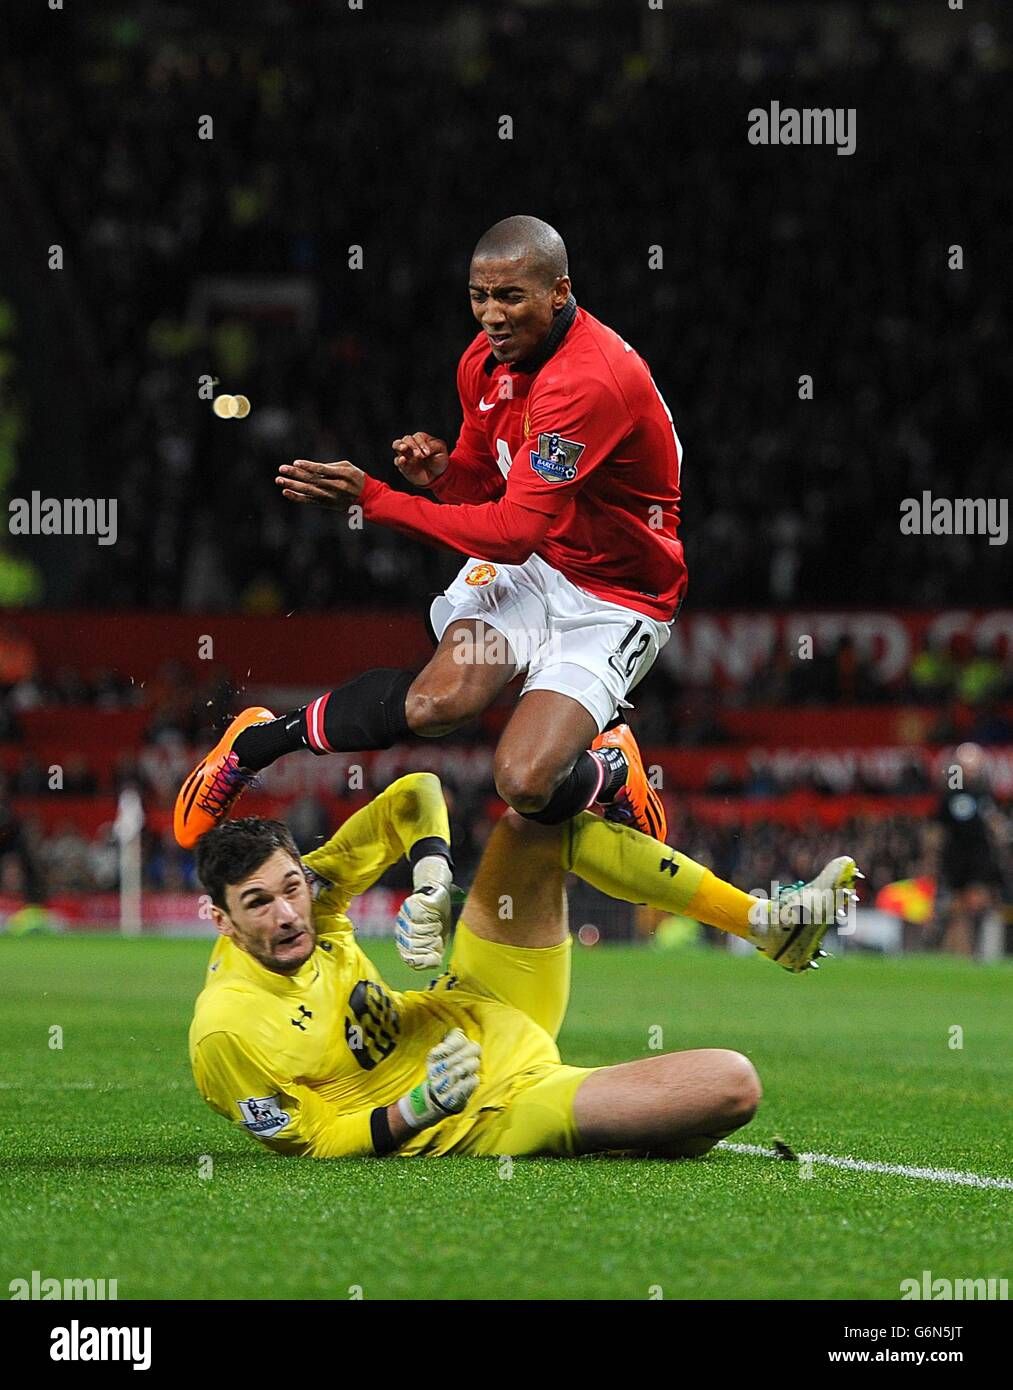 Soccer - Barclays Premier League - Manchester United v Tottenham Hotspur - Old Trafford - Stock Image